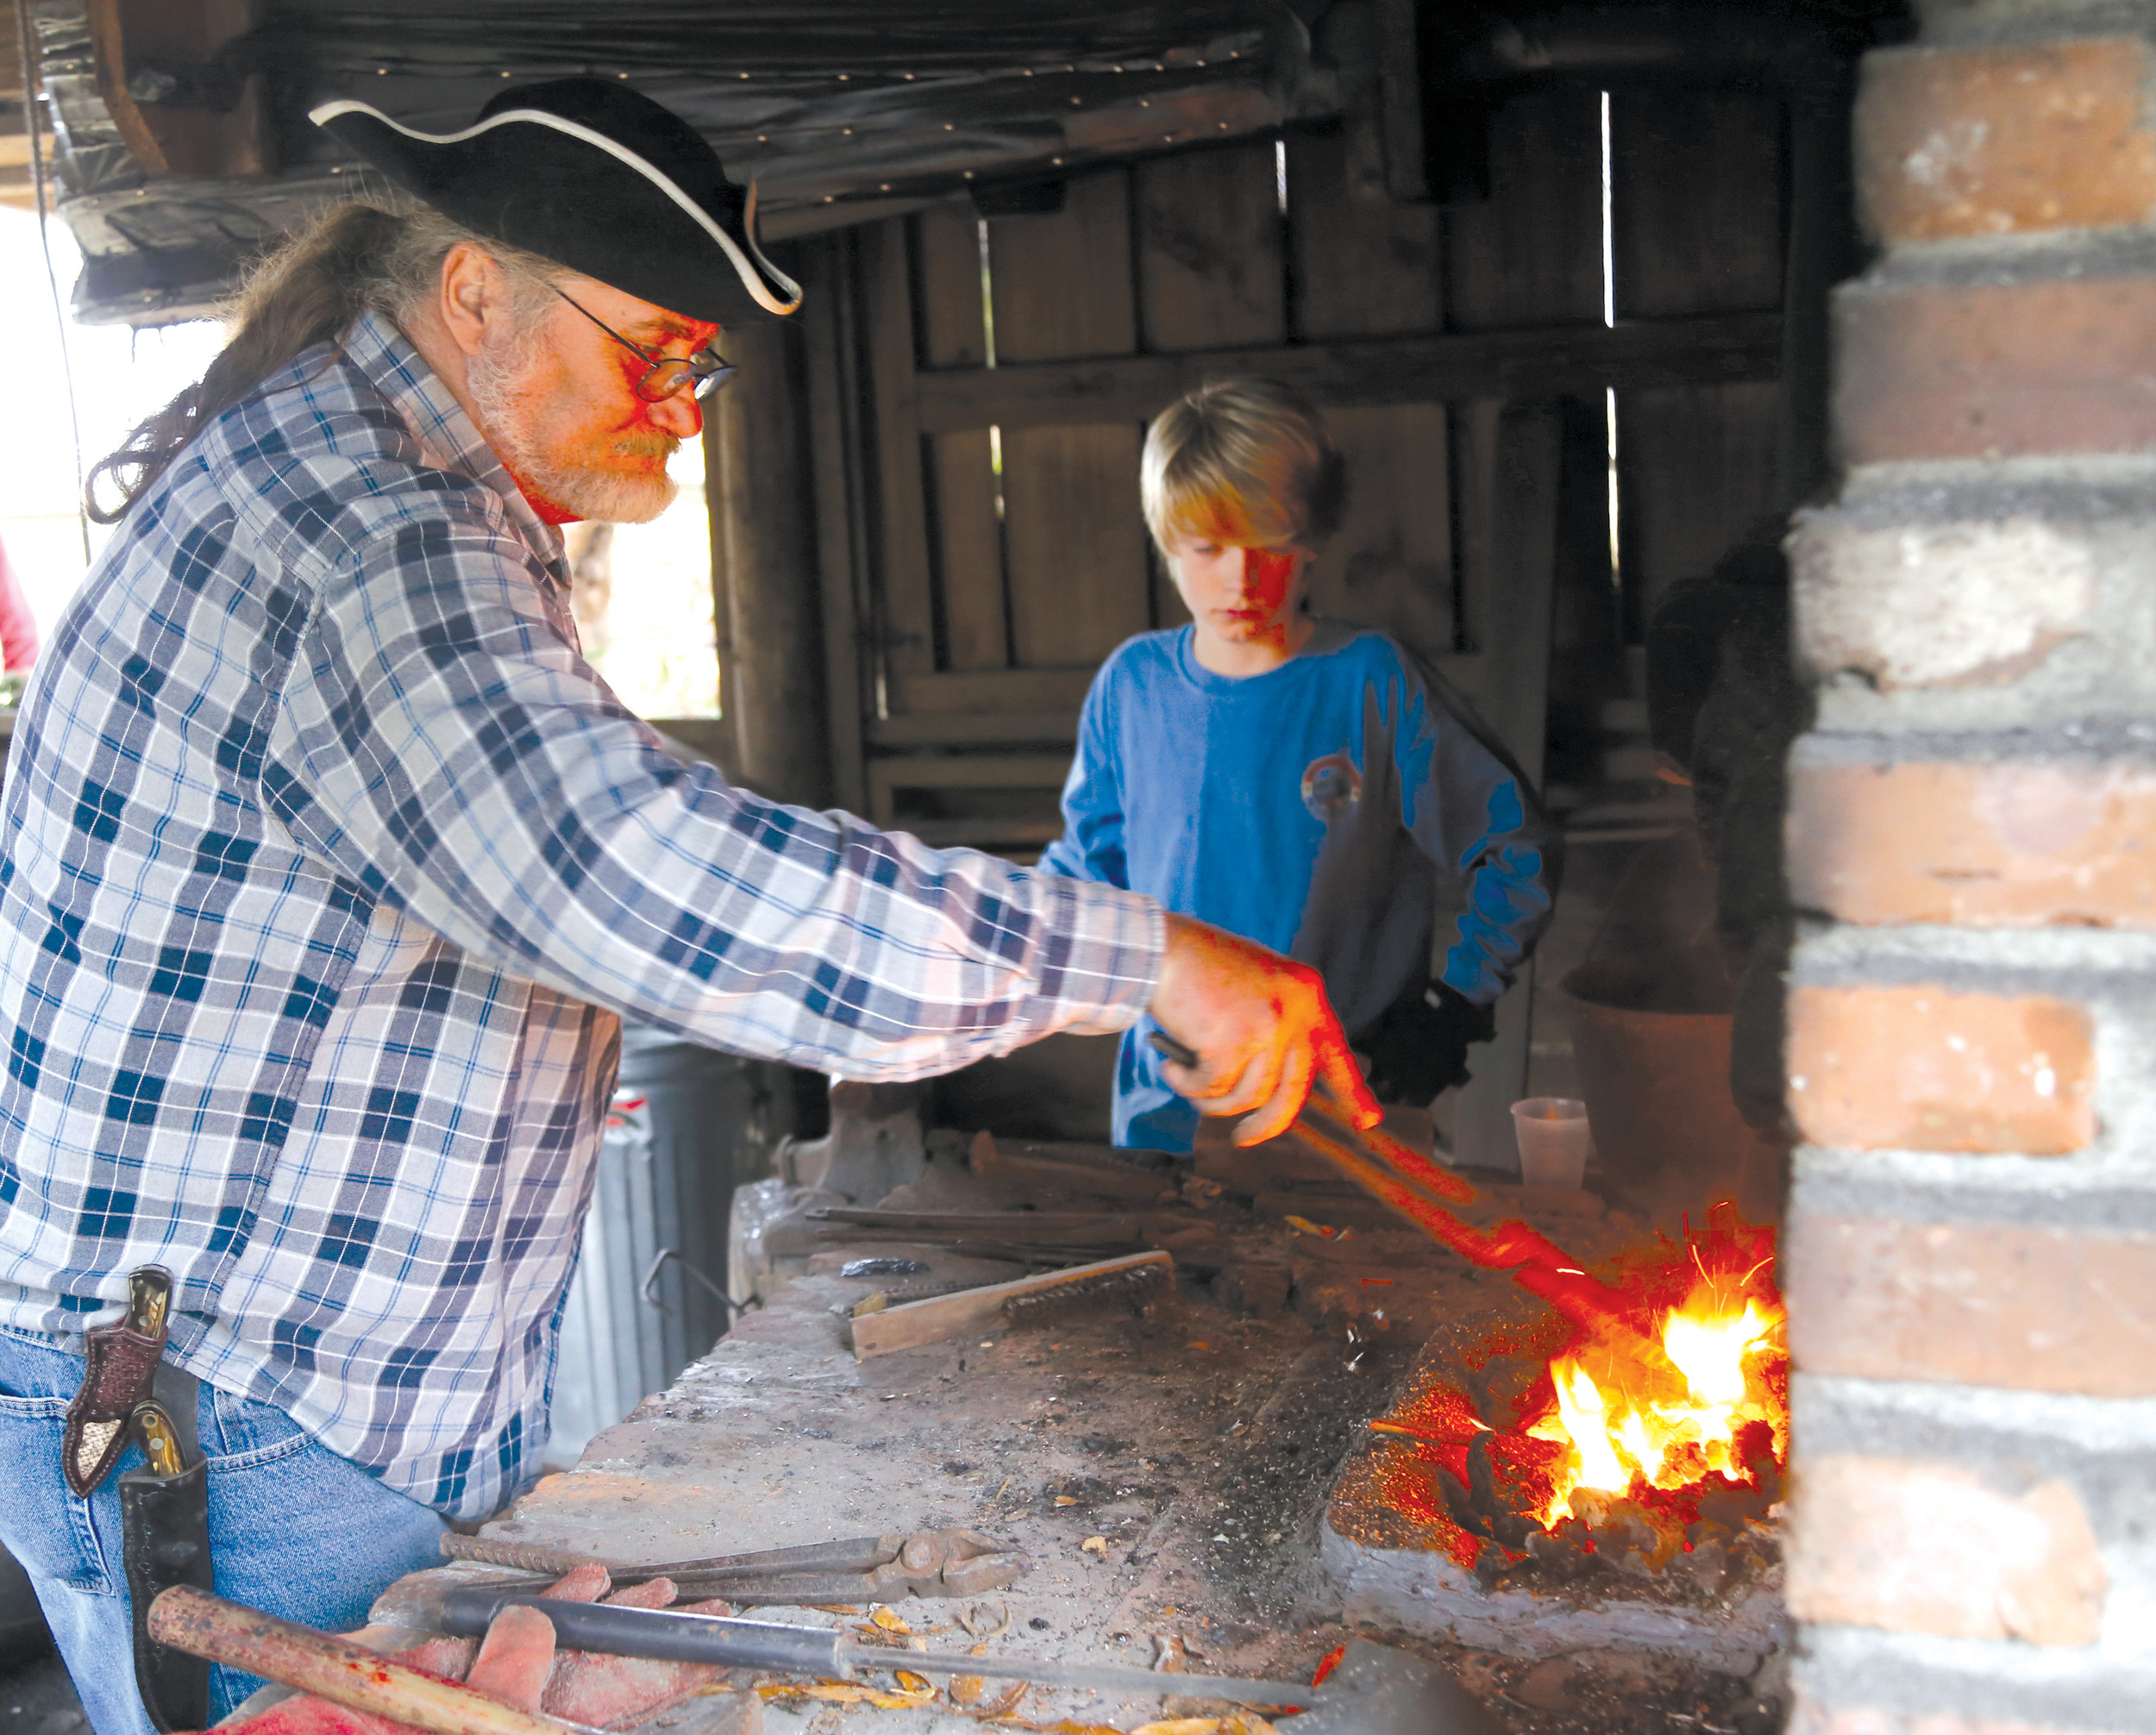 Blacksmith Randall Draper, left, shows Asher Hasbrouck how knifes were made 200 years ago on Saturday at the Carolina Backcountry Christmas re-enactment at the Sumter County Museum.